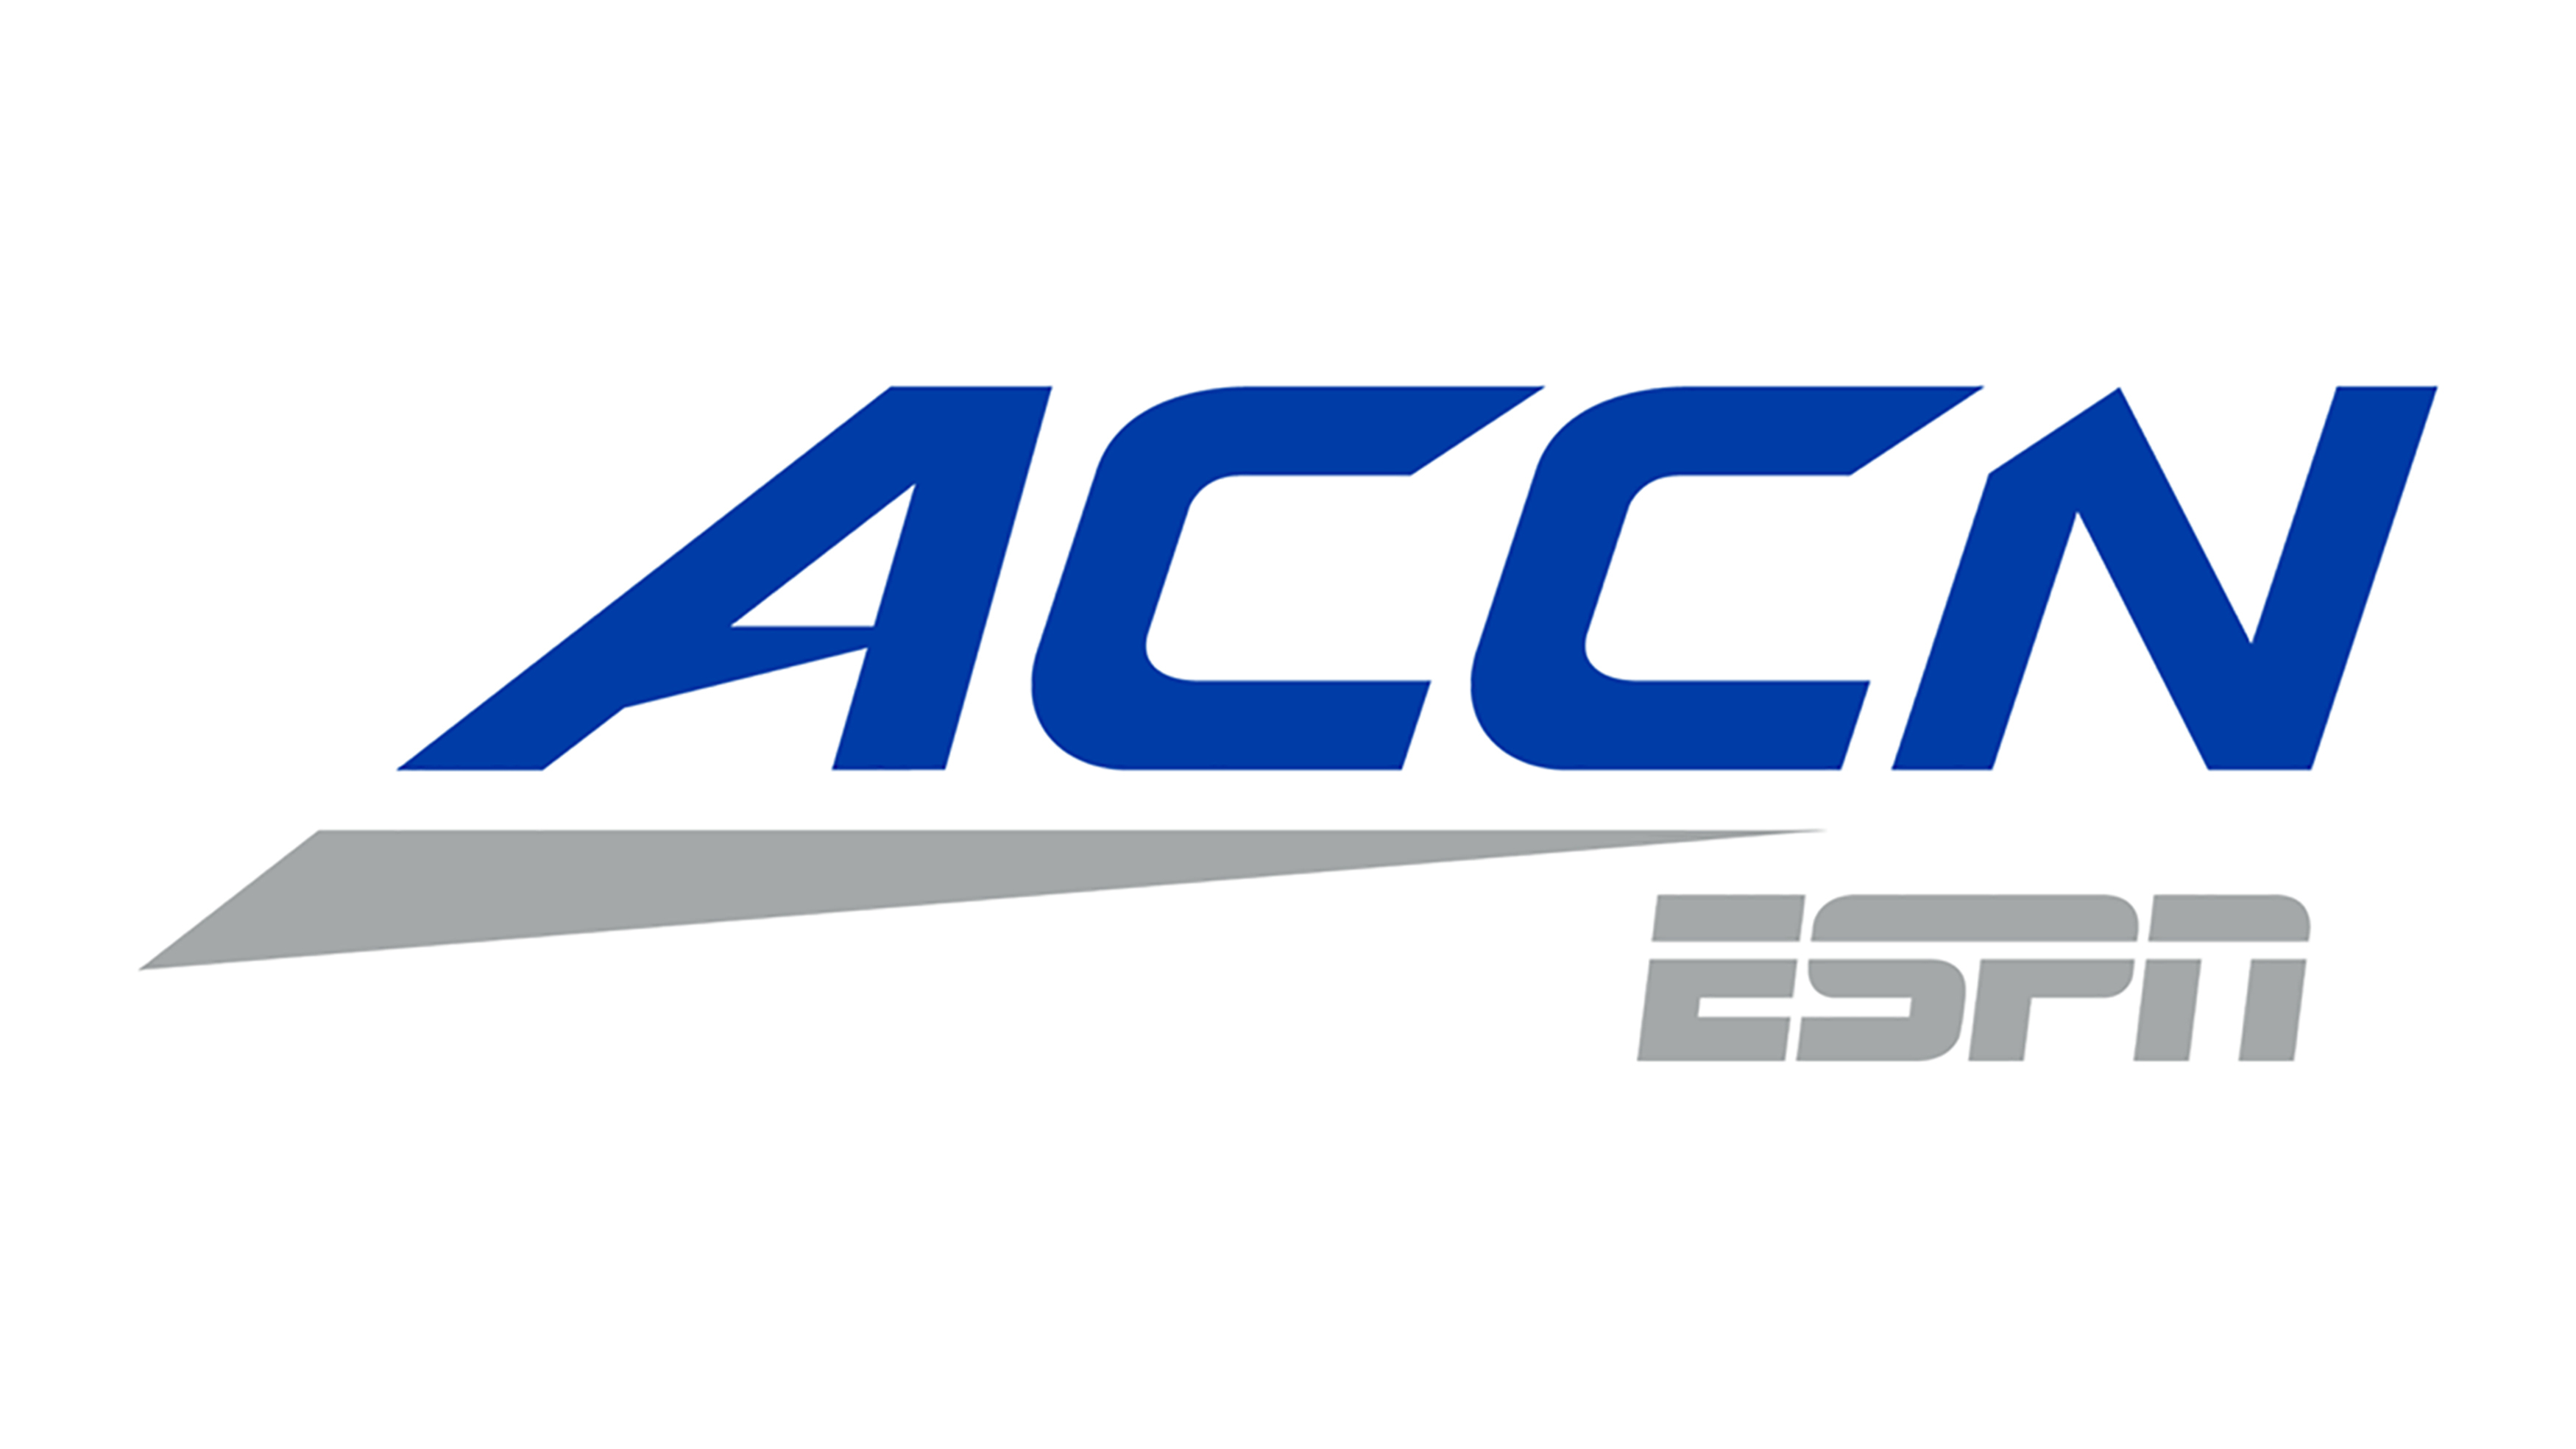 Questions About the ACC Network? We Have Answers - Duke